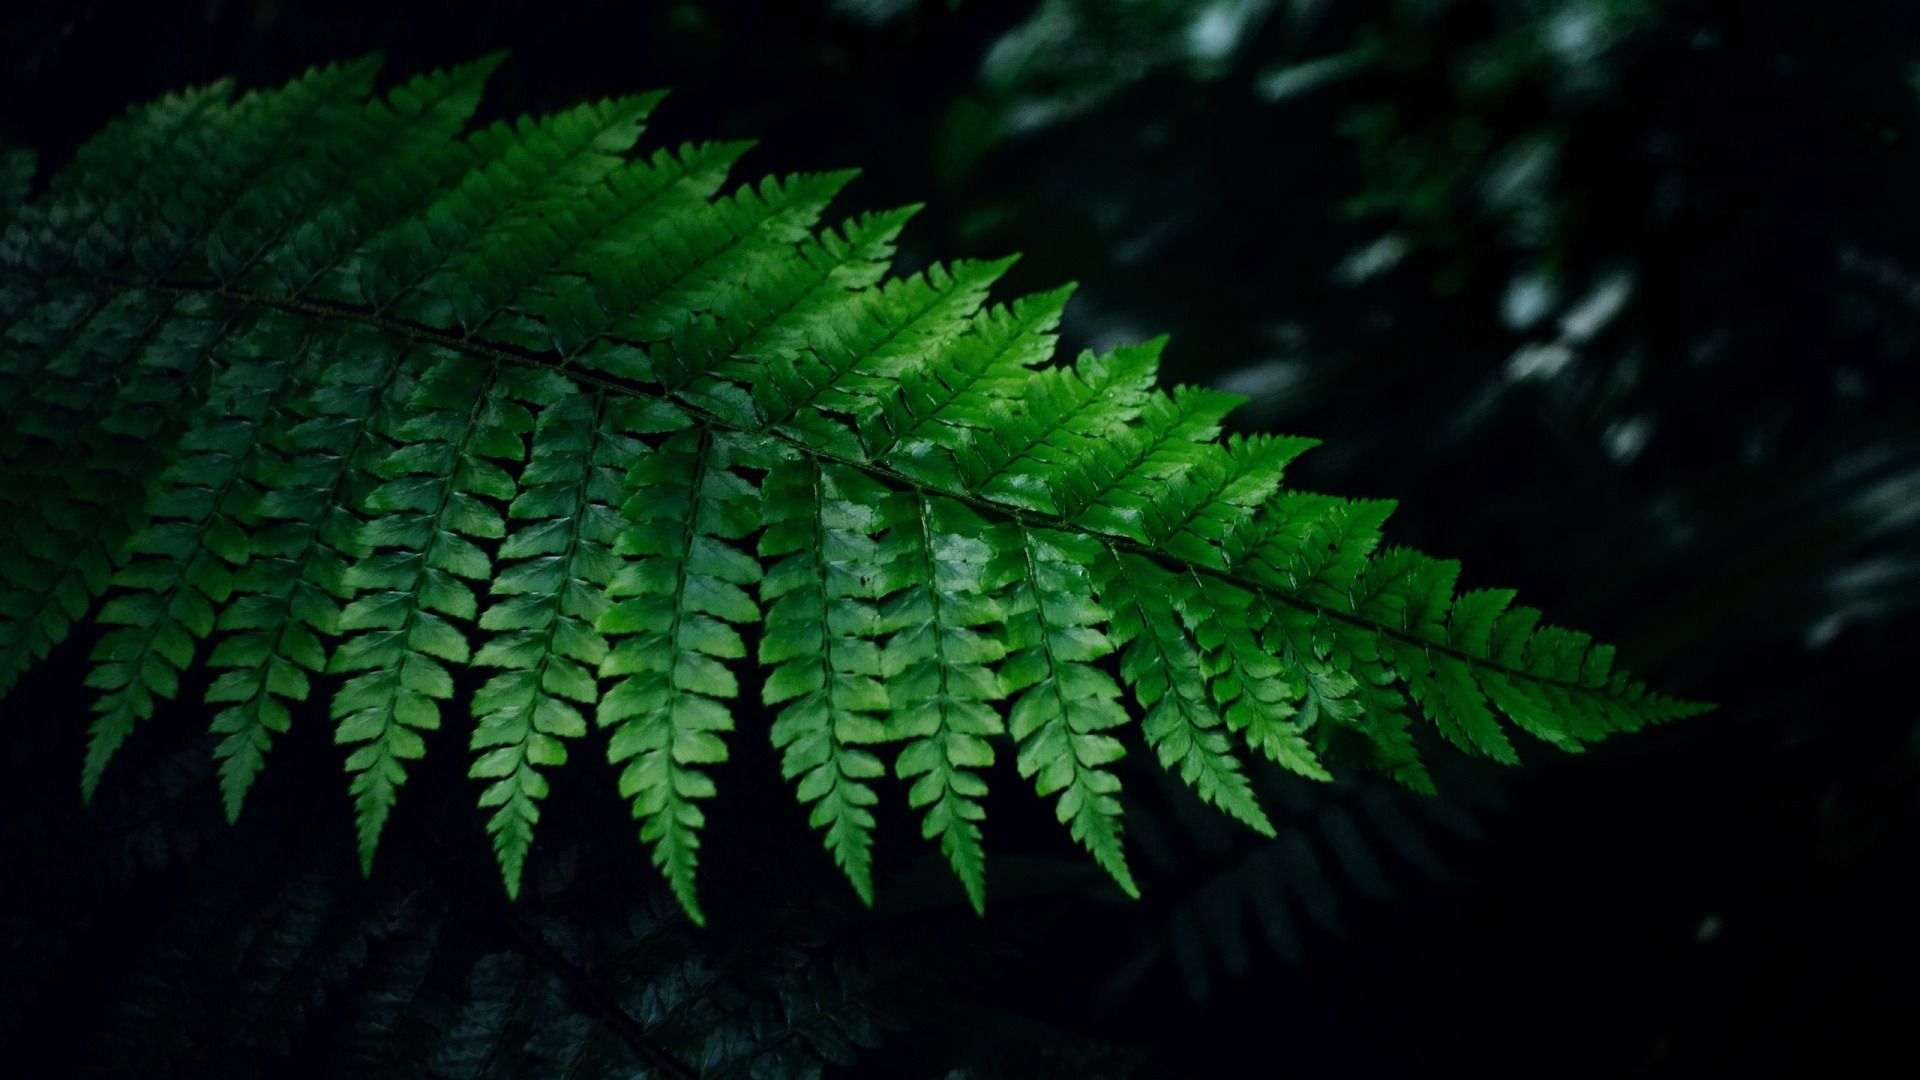 Fern wallpaper photo full hd